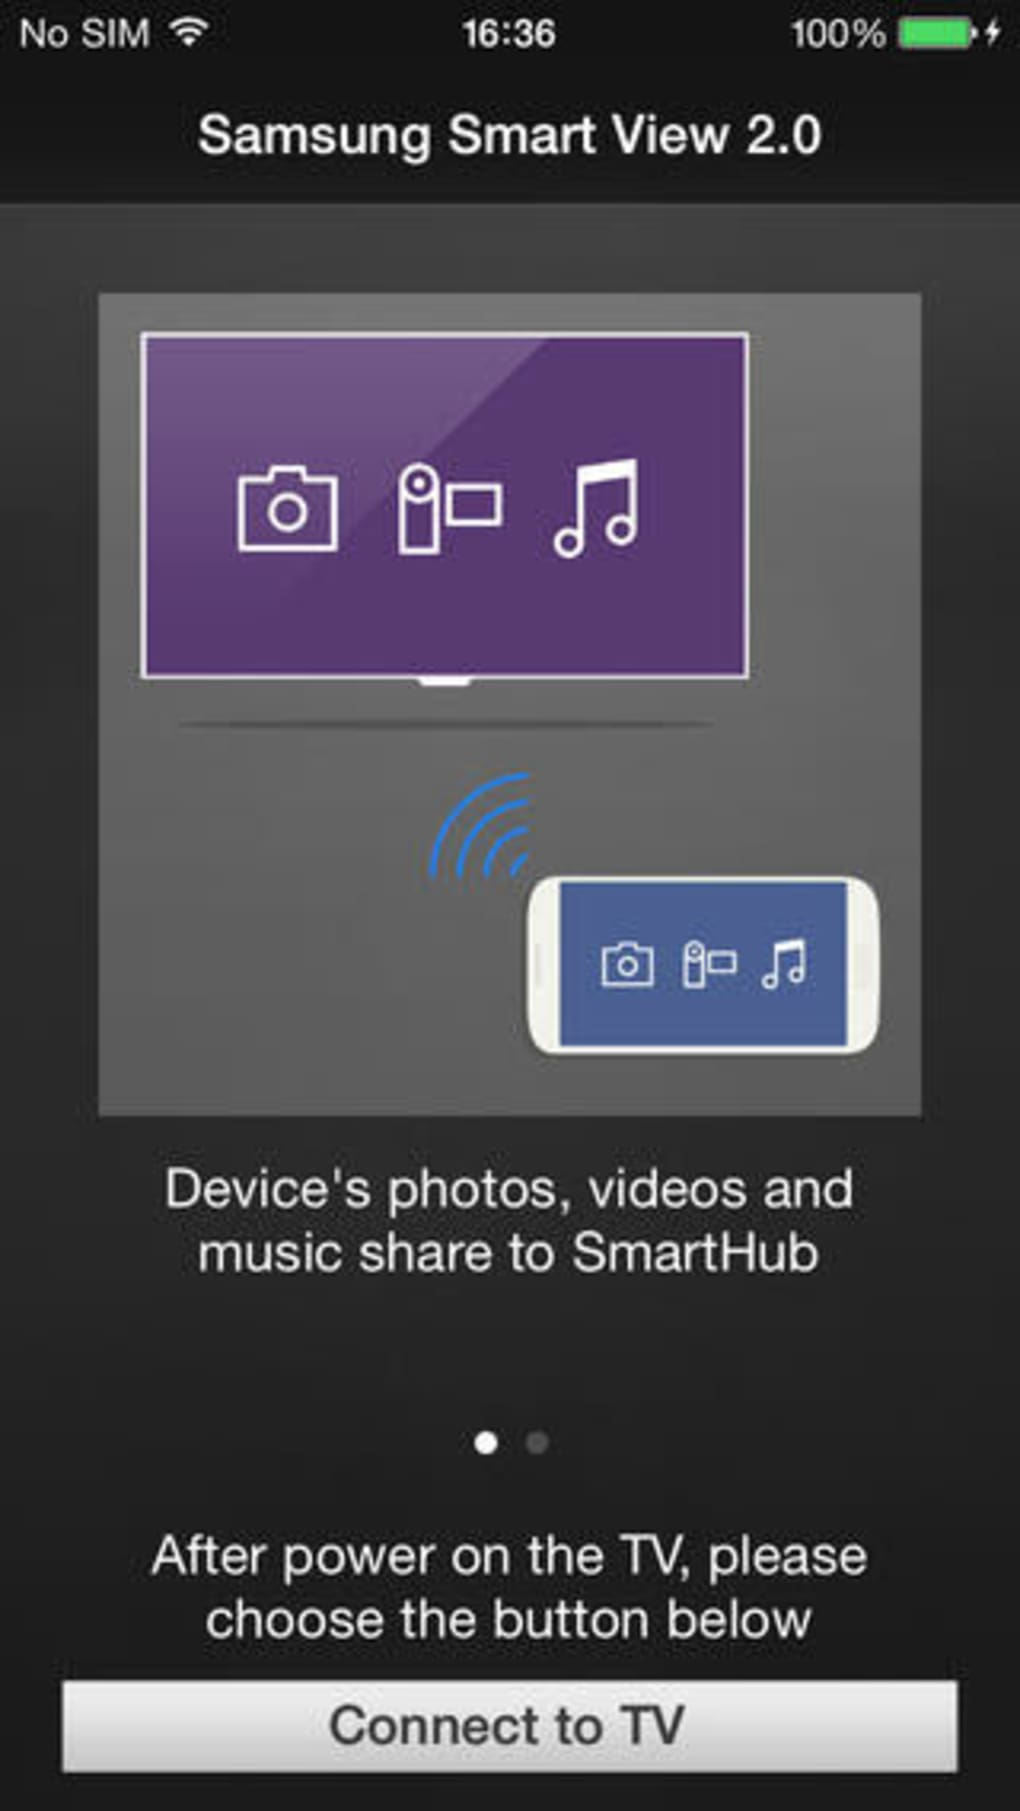 Samsung SmartView 2 0 for iPhone - Download